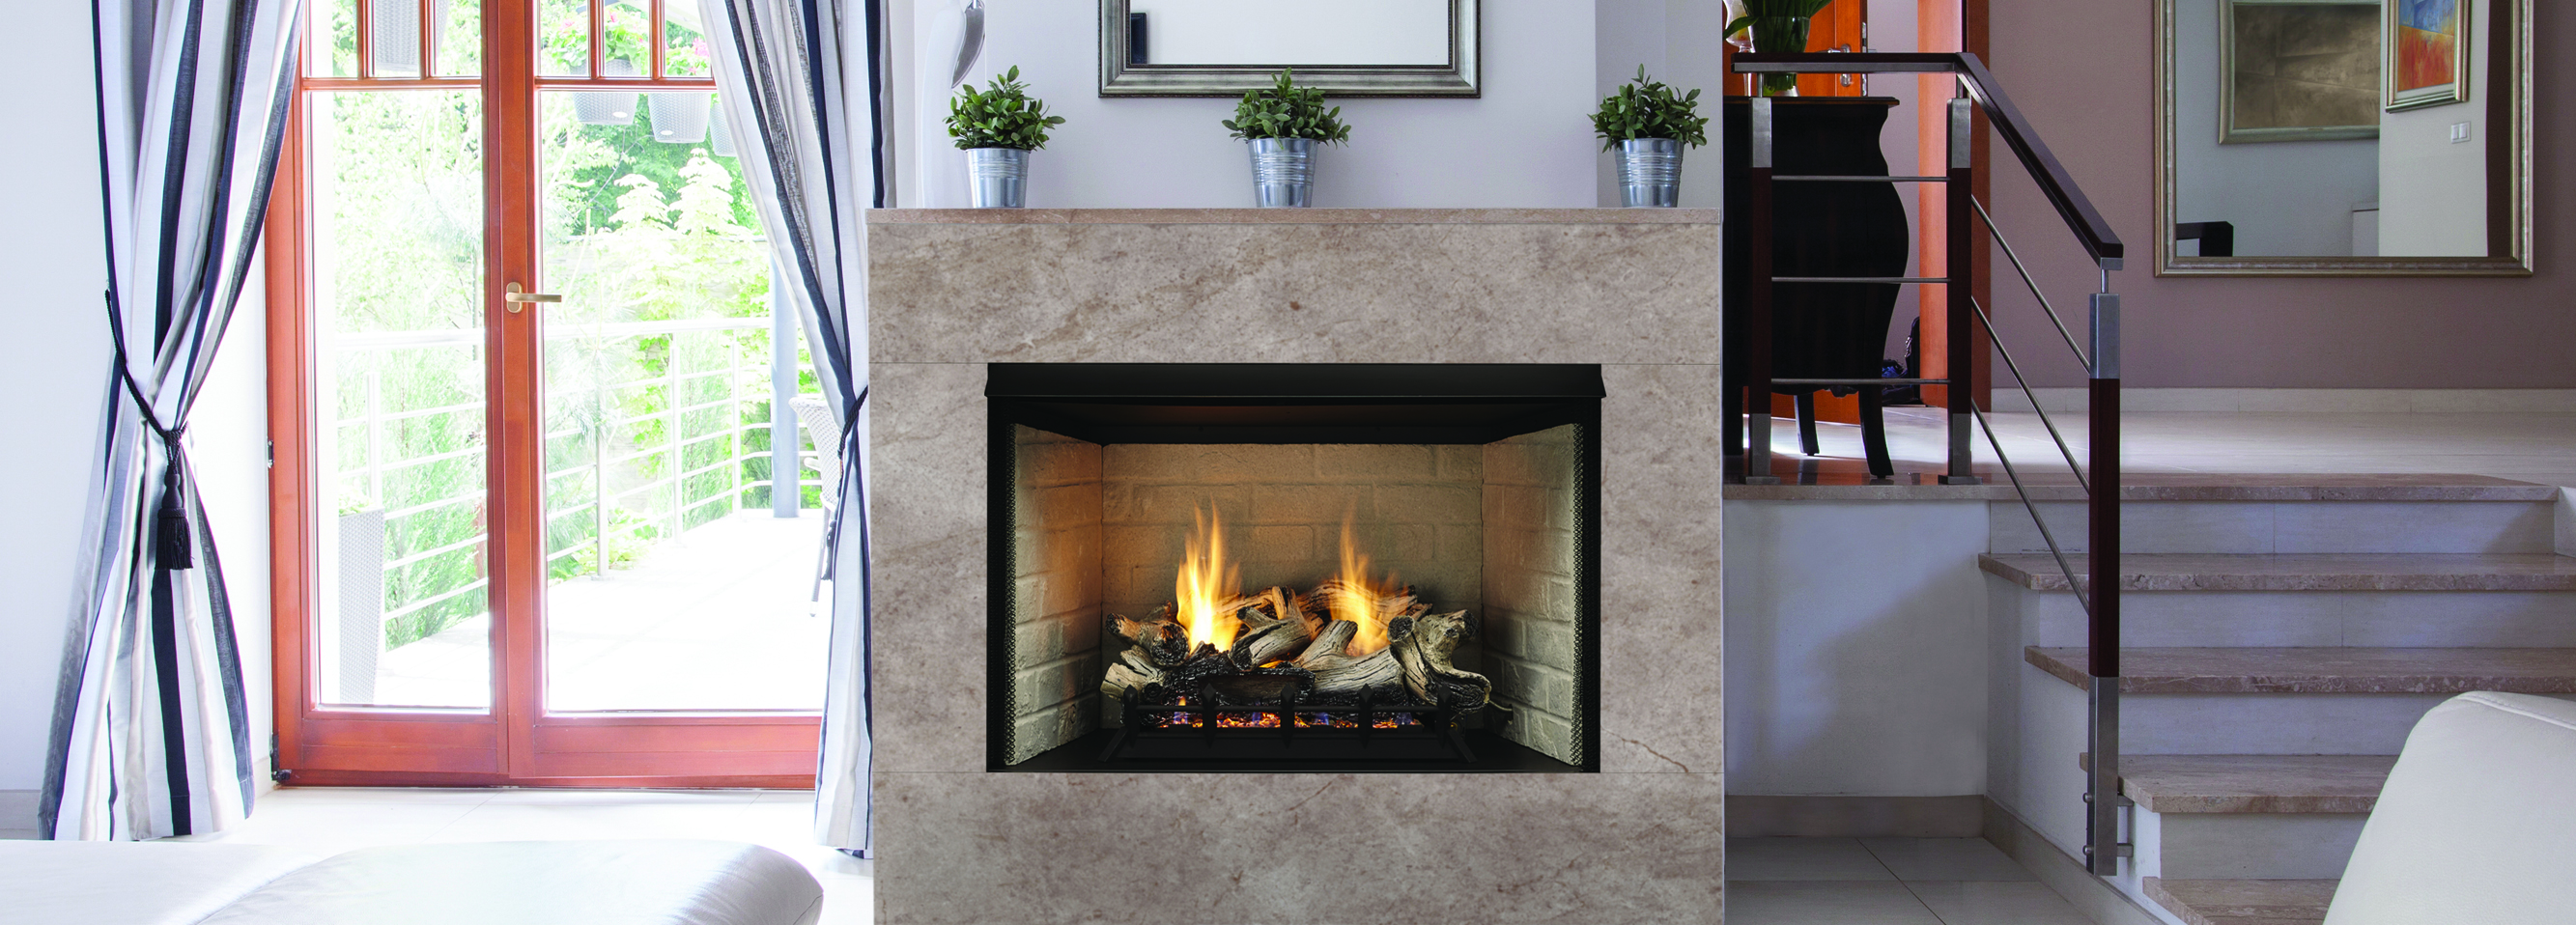 Monessen Shop offers the full line of Monessen hearth products including gas fireplaces